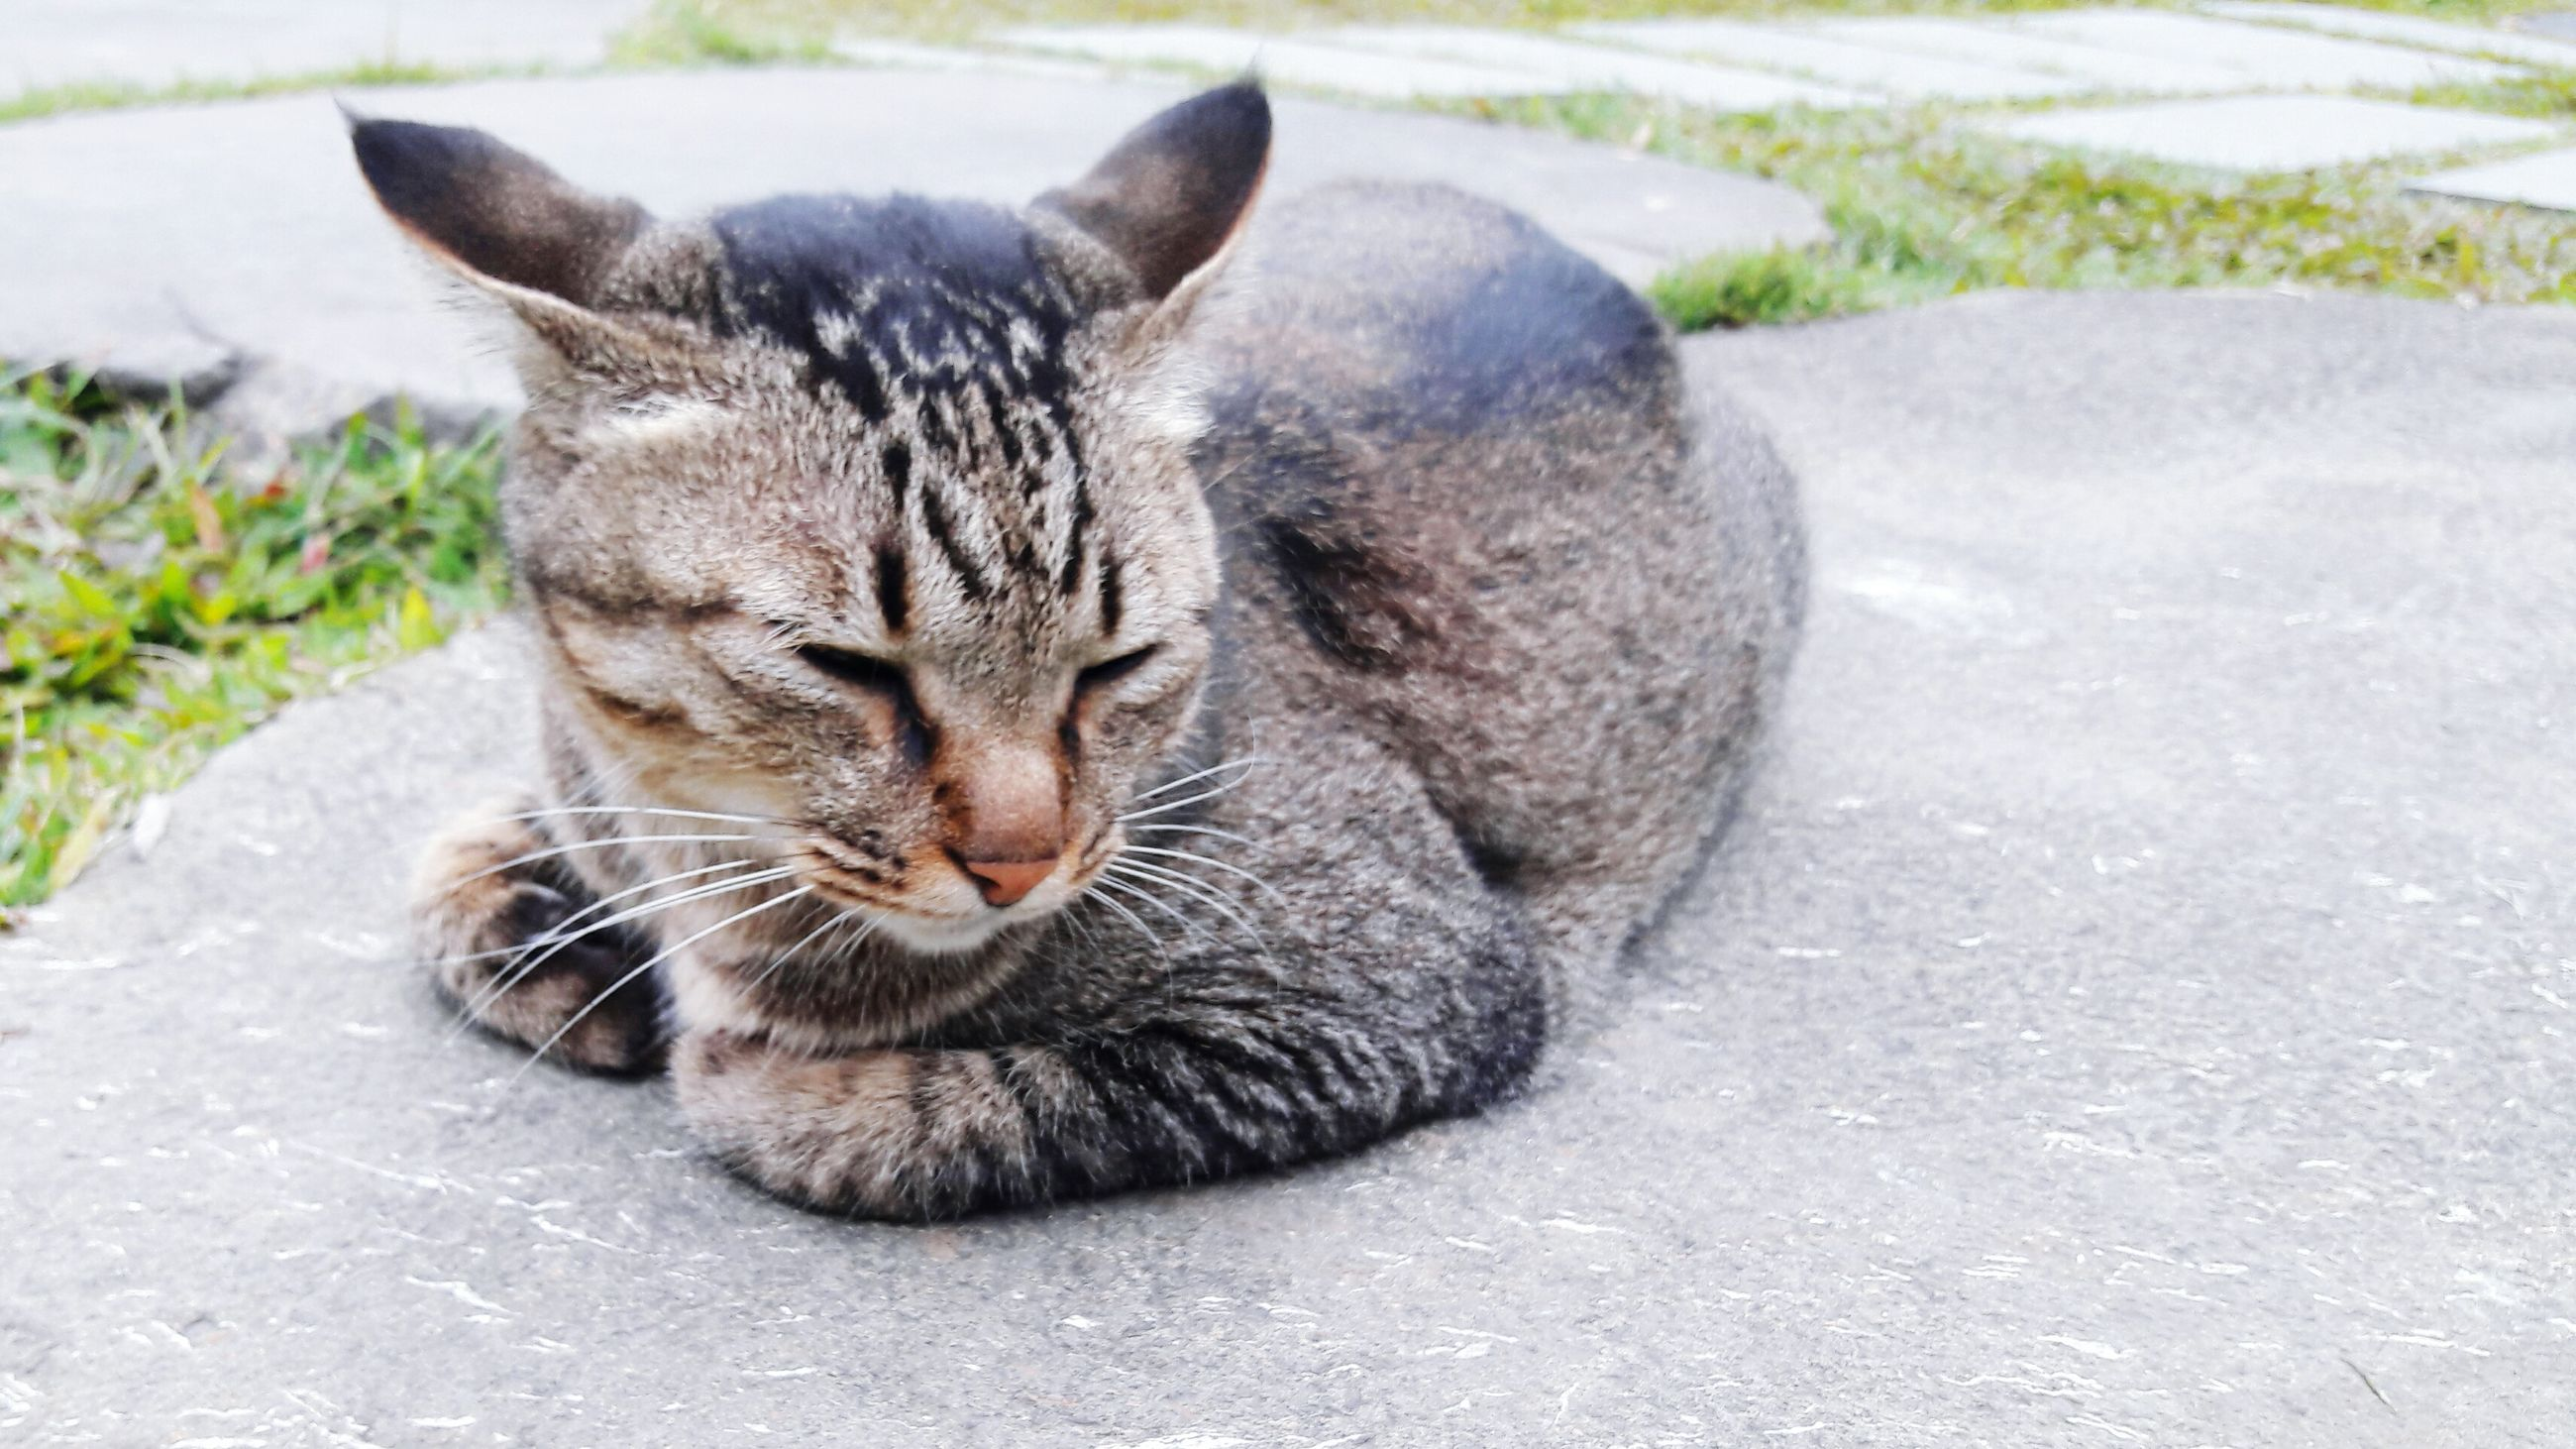 animal themes, one animal, mammal, domestic animals, domestic cat, pets, cat, feline, relaxation, whisker, lying down, sleeping, resting, street, two animals, full length, eyes closed, outdoors, close-up, sitting